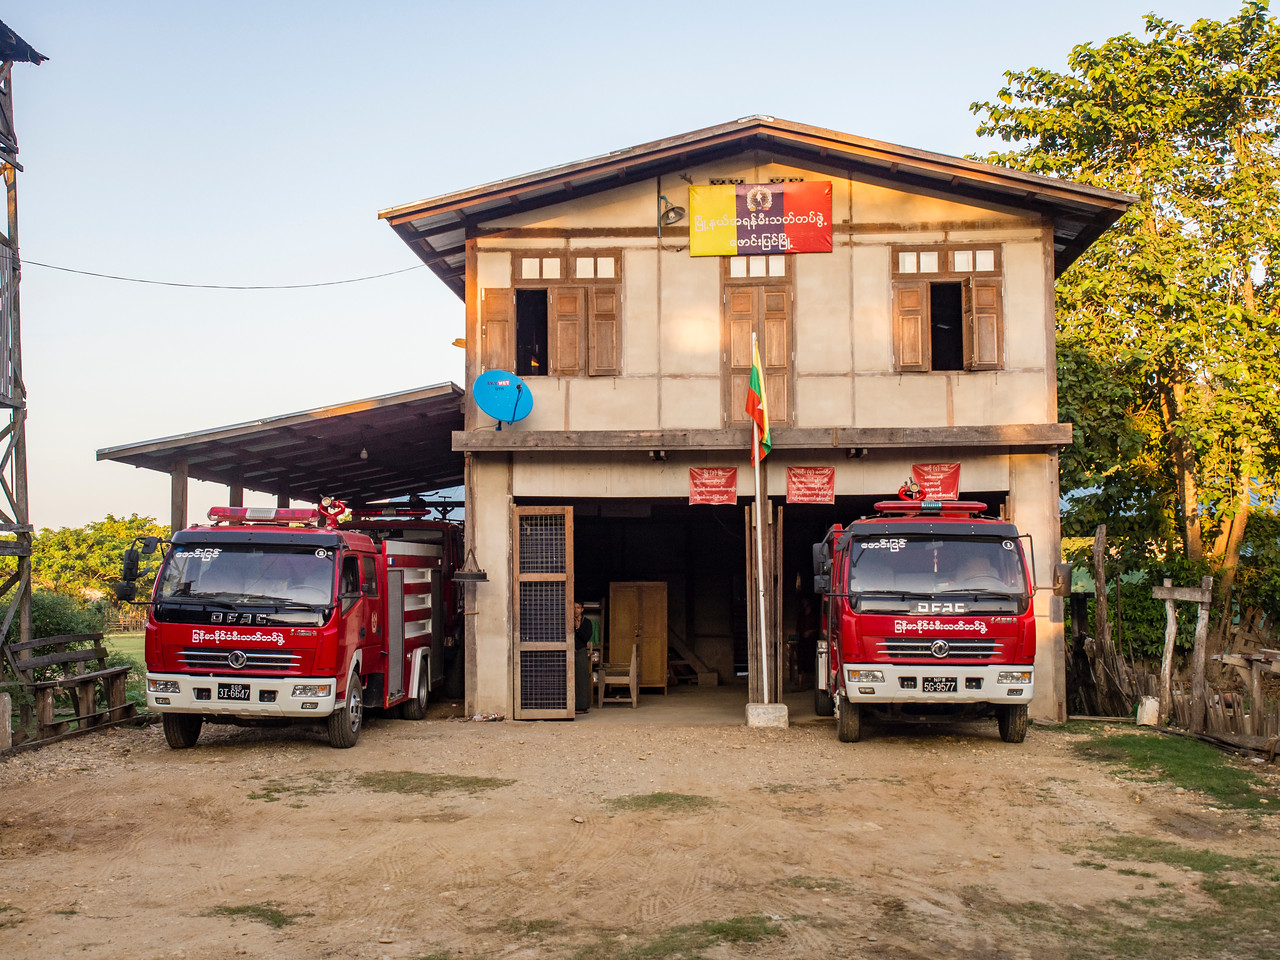 Fire station, Paung Pyin village